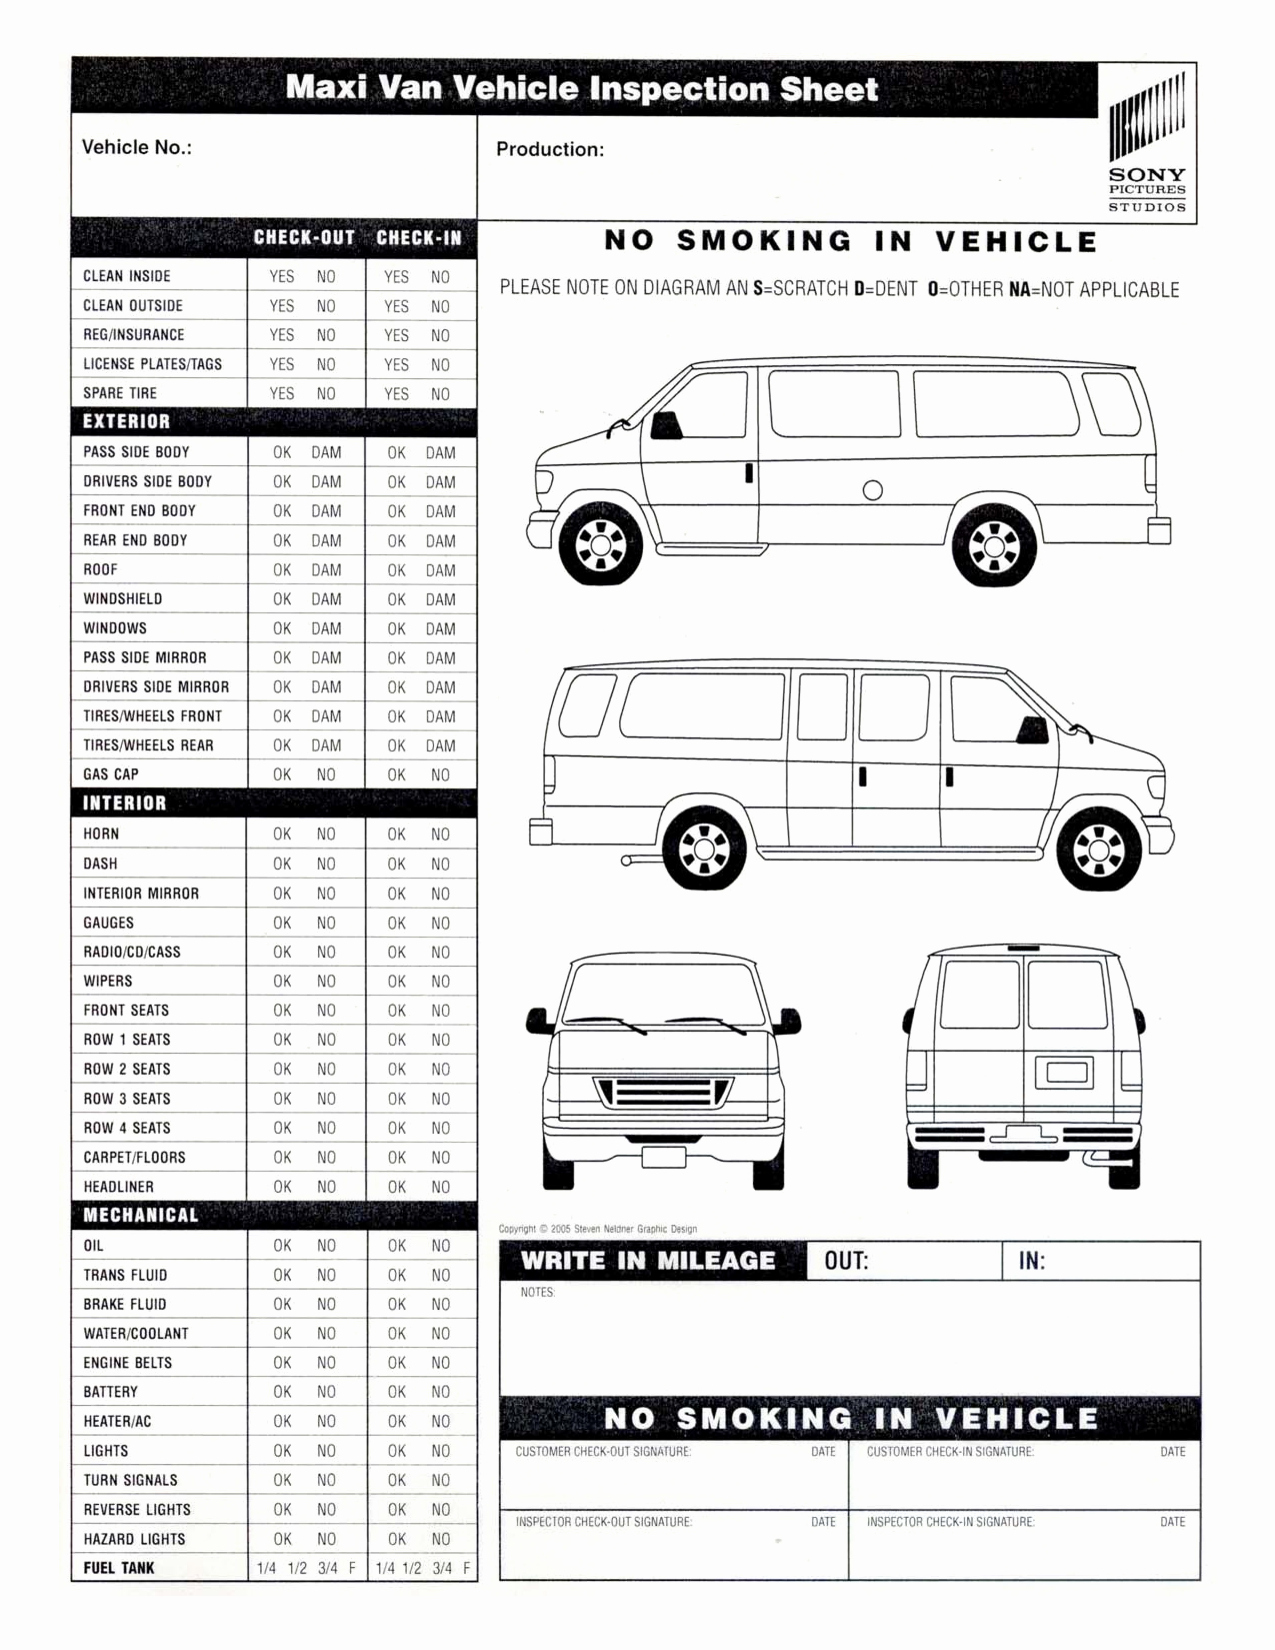 Daily Vehicle Inspection form Template Beautiful Vehicle Inspection Sheet Template